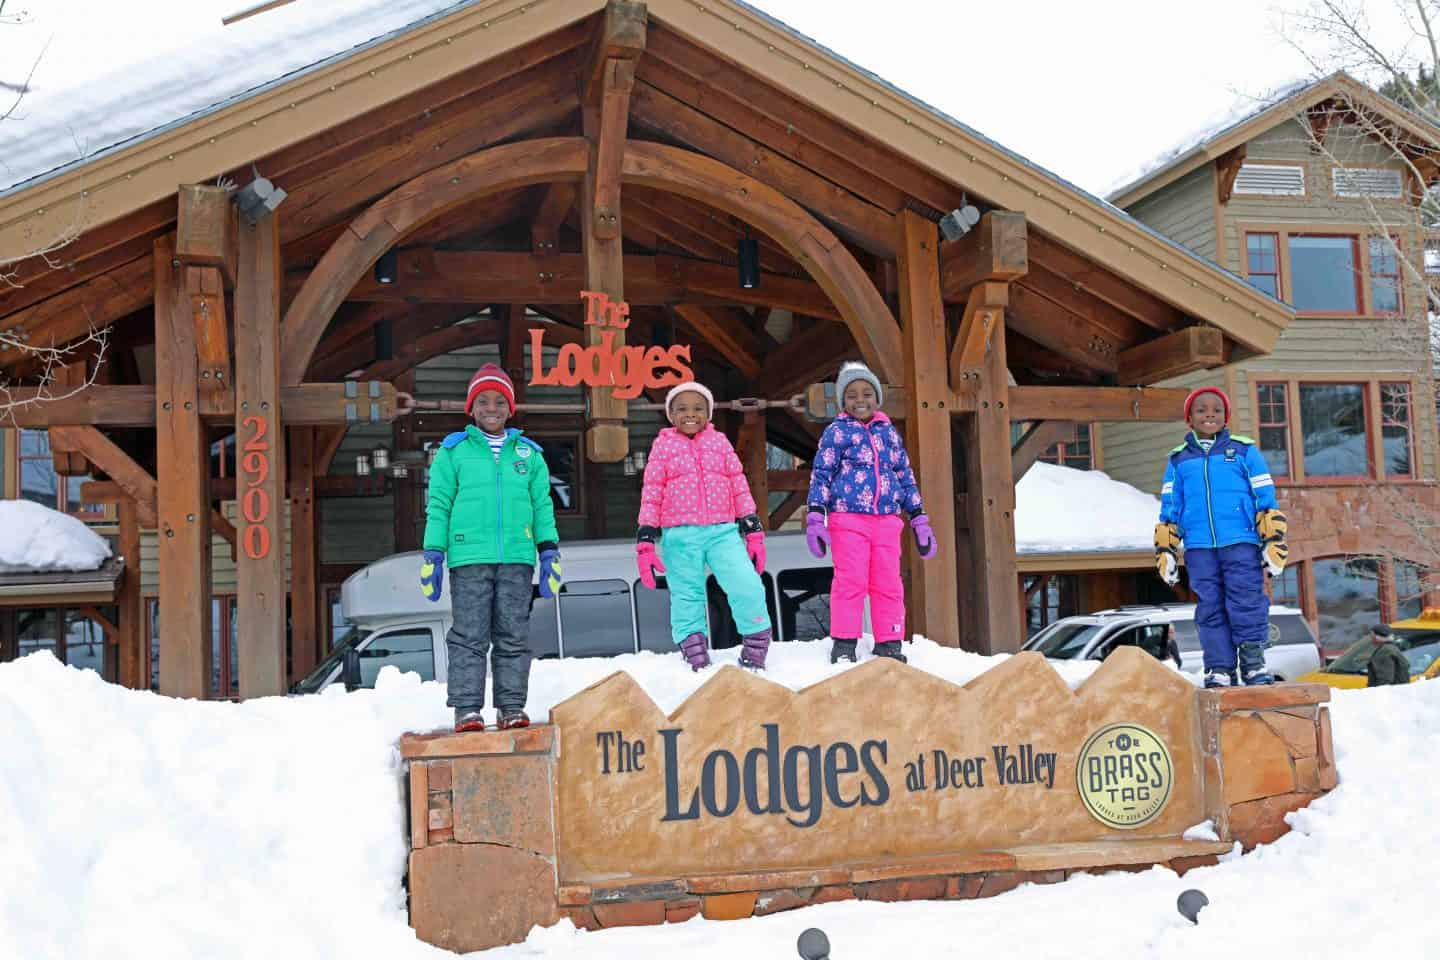 black kids standing in front of the lodges at deer valley